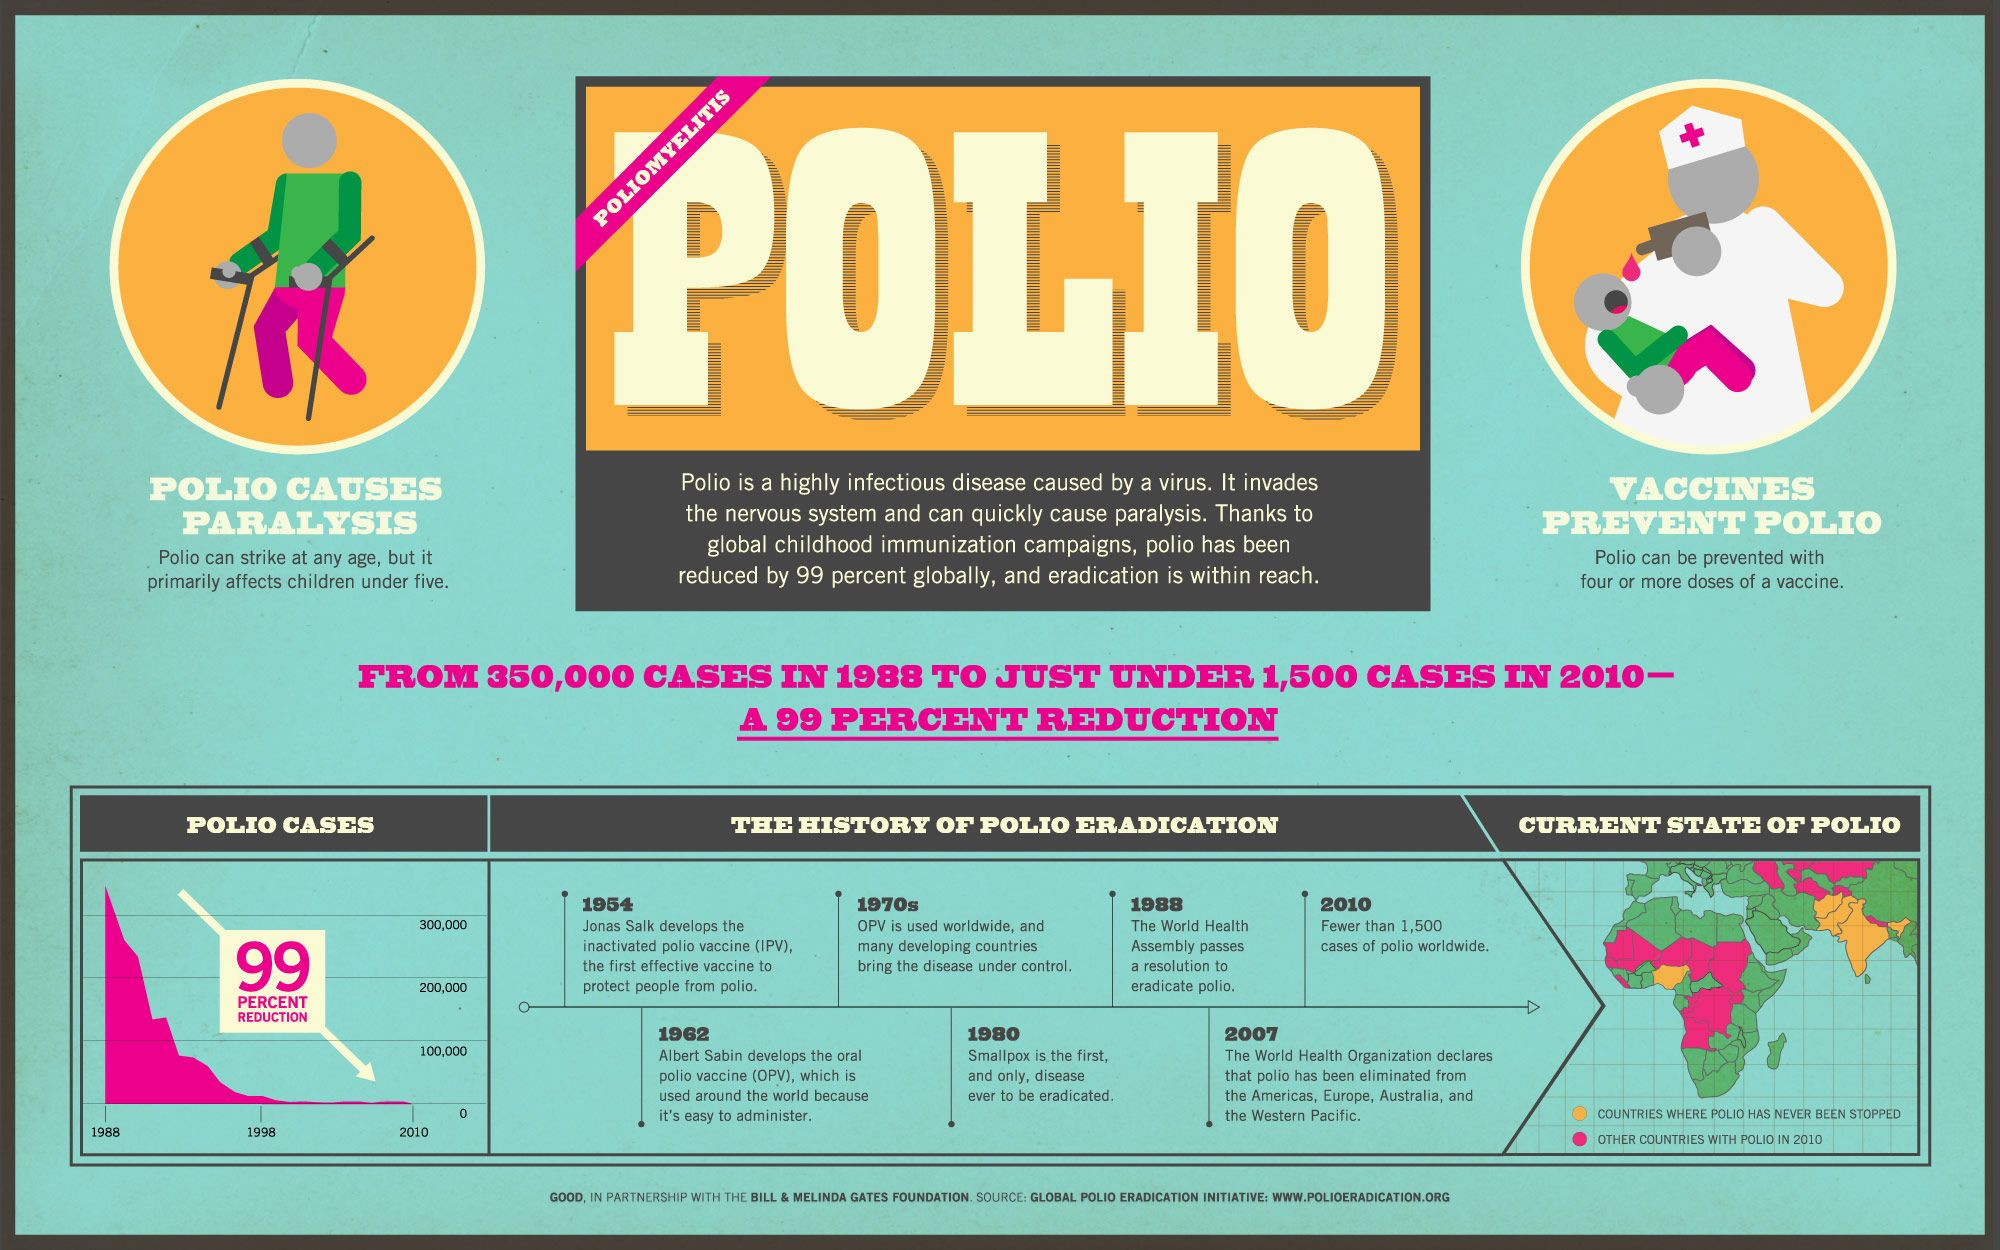 polio vaccine in america essay Jonas salk found a cure for one of the worst illnesses in the history of man, polio jonas salk's polio vaccine was a great discovery of his time, and it is still being used today to eradicate polio worldwide.